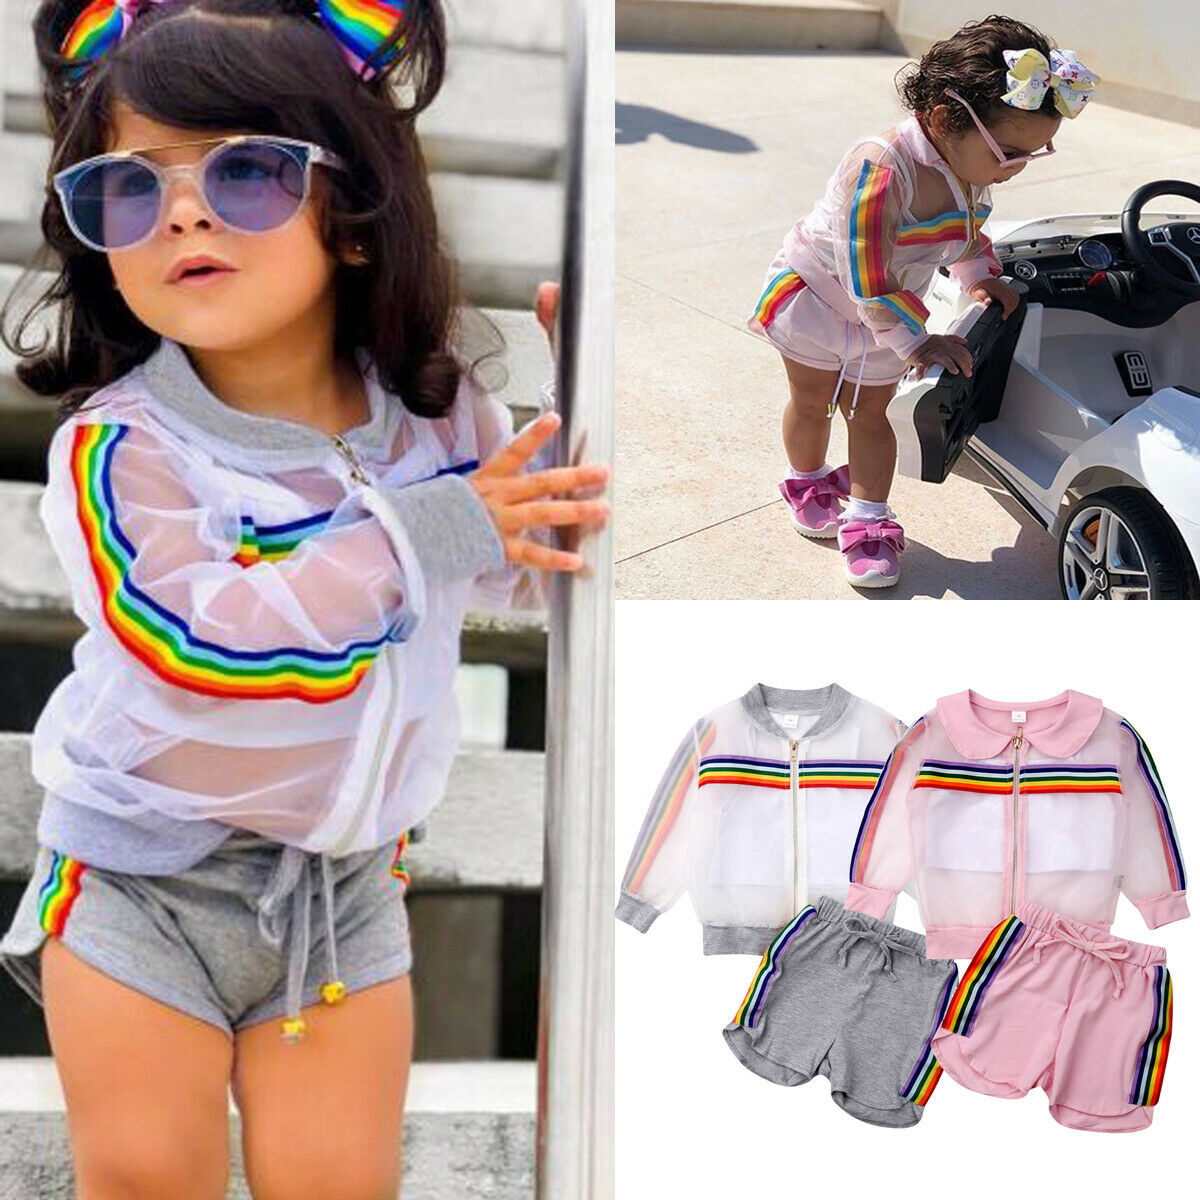 2019 New Toddler Girl Clothes Set Summer See Through Coat Crop Top Shorts Baby Girls Long Sleeve Coat+Vest+Short Pants Outfits(China)